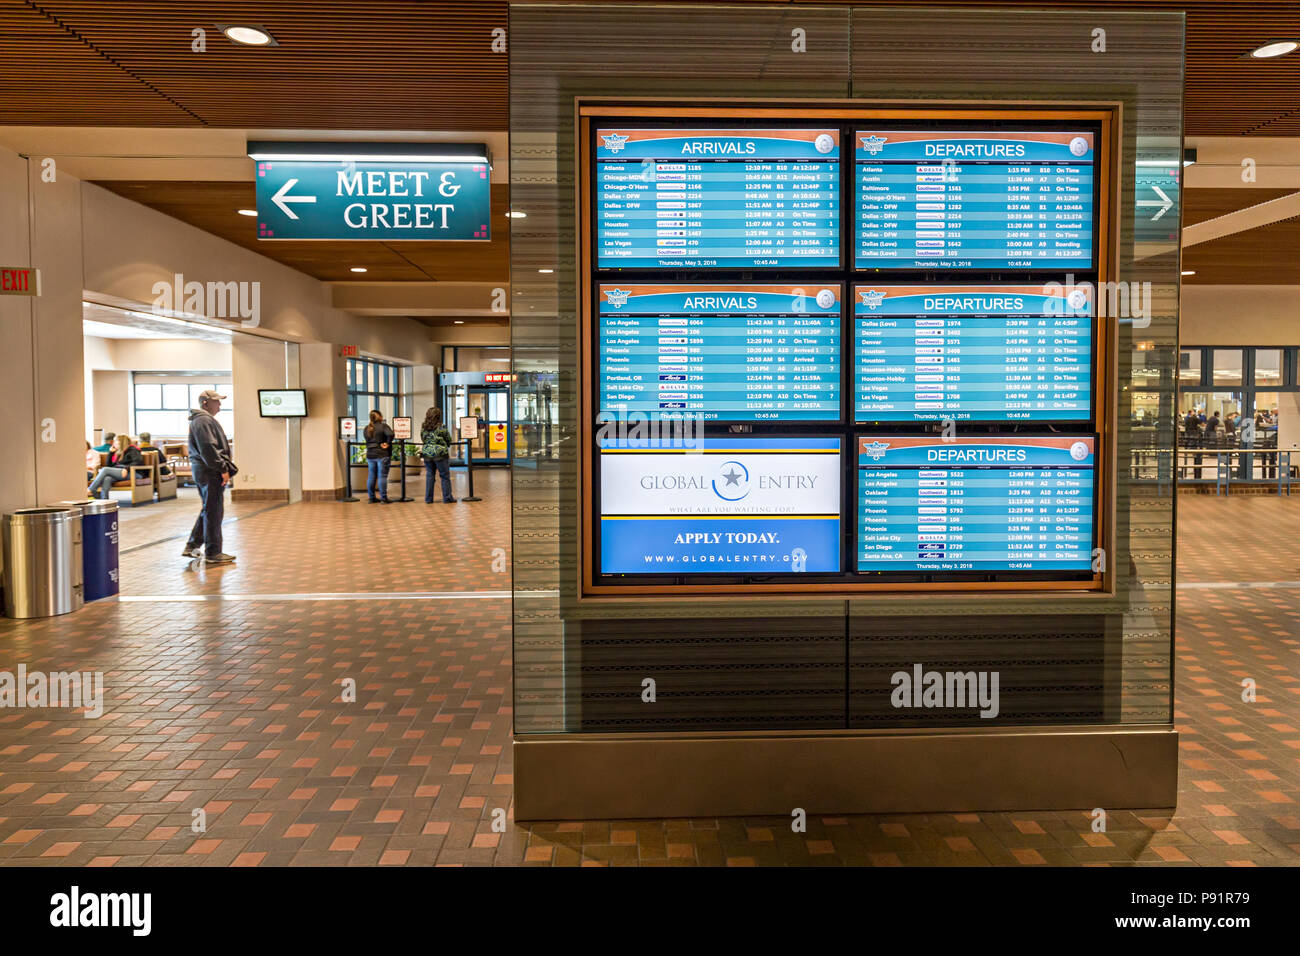 Arrivals and departures board with Meet & Greet sign, airport, Albuquerque, New Mexico, USA - Stock Image